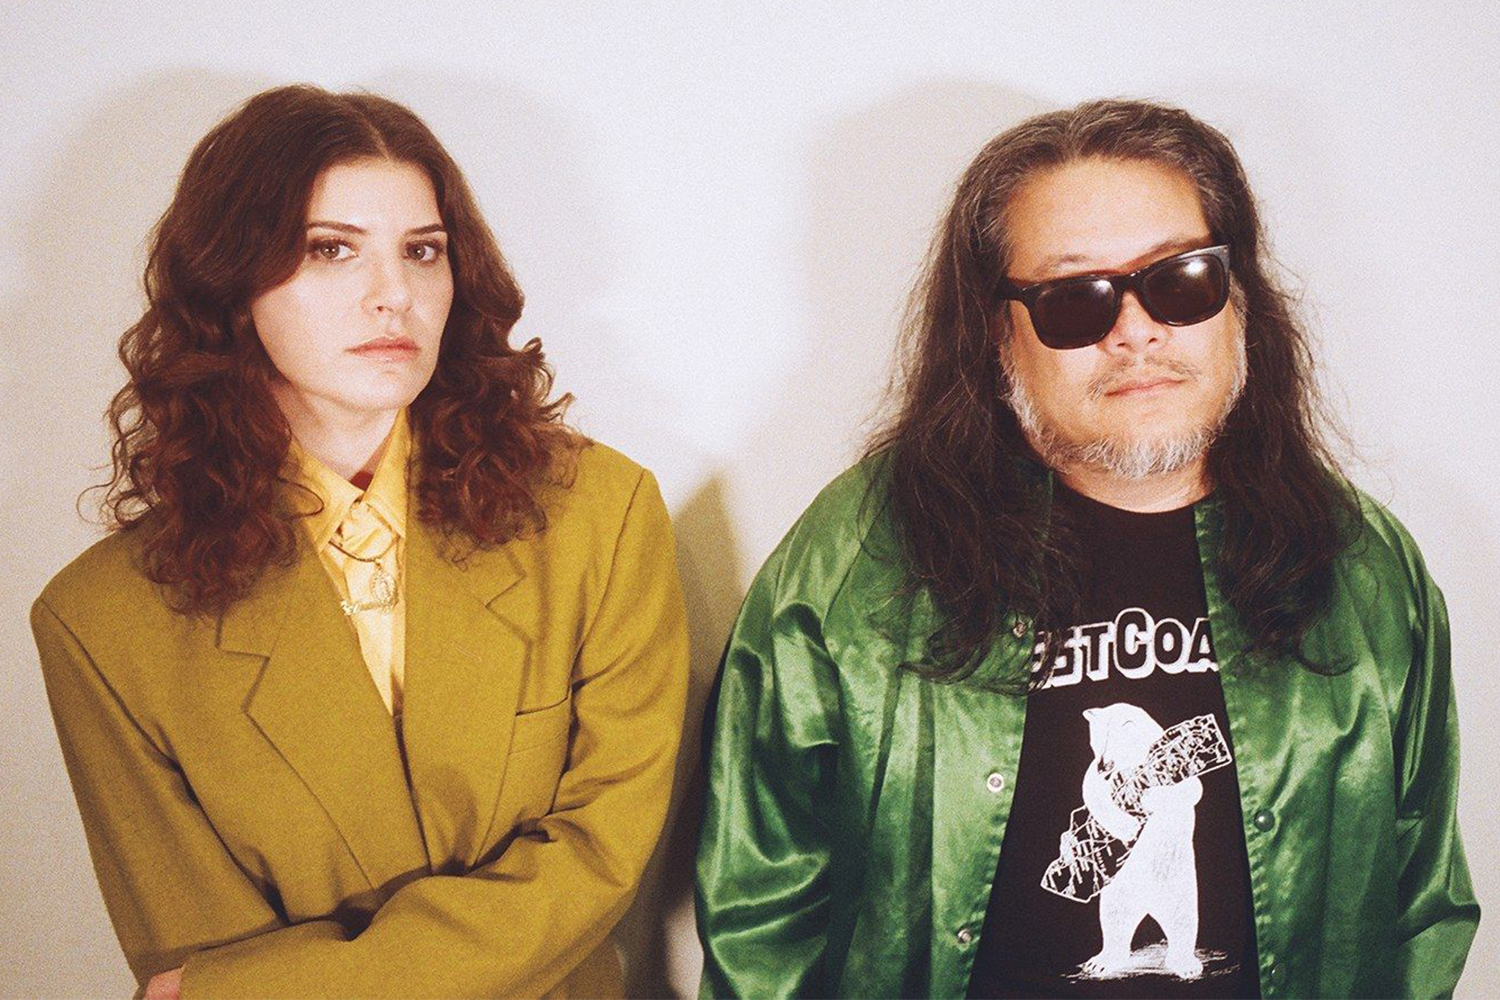 Songs of the Week: Best Coast, George Michael and More